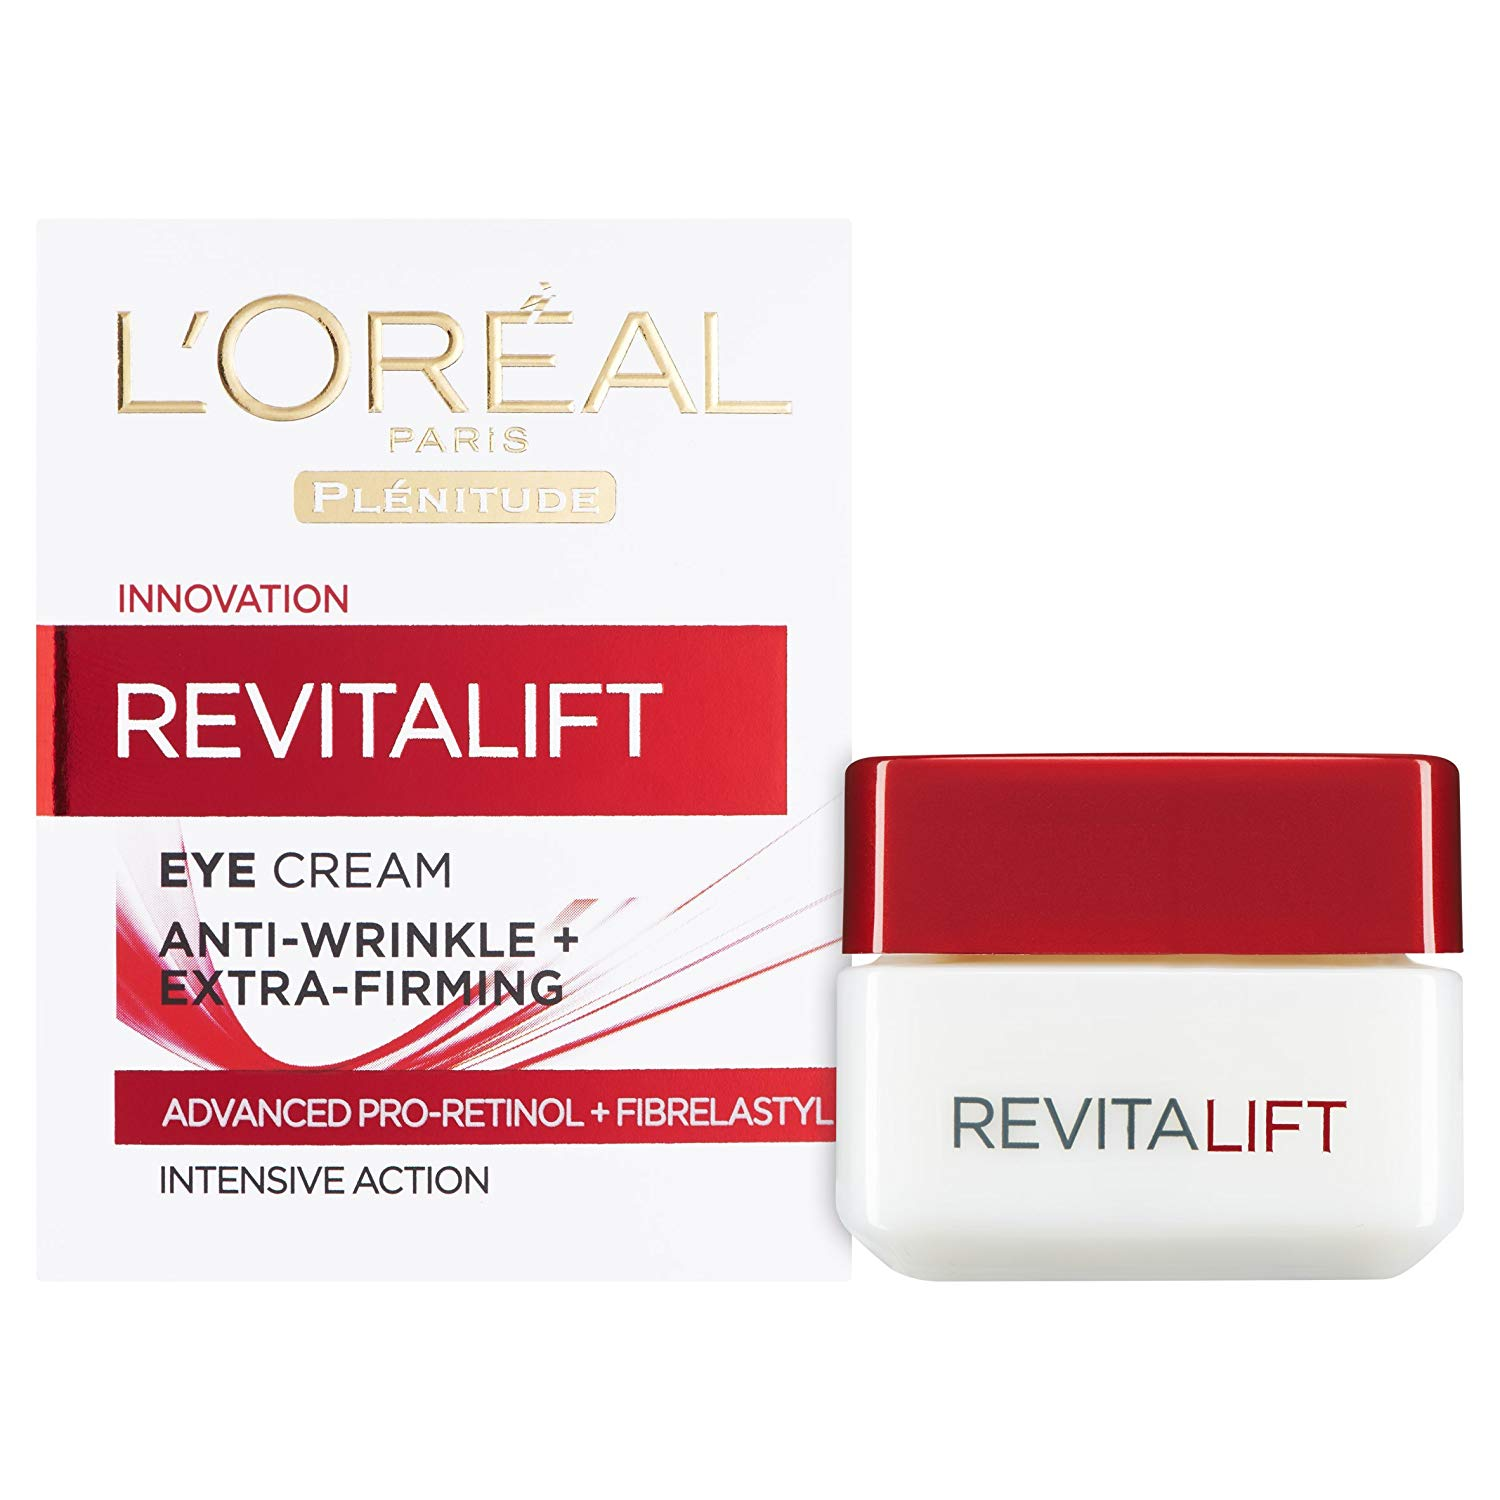 L'Oreal Revitalift Eyecream